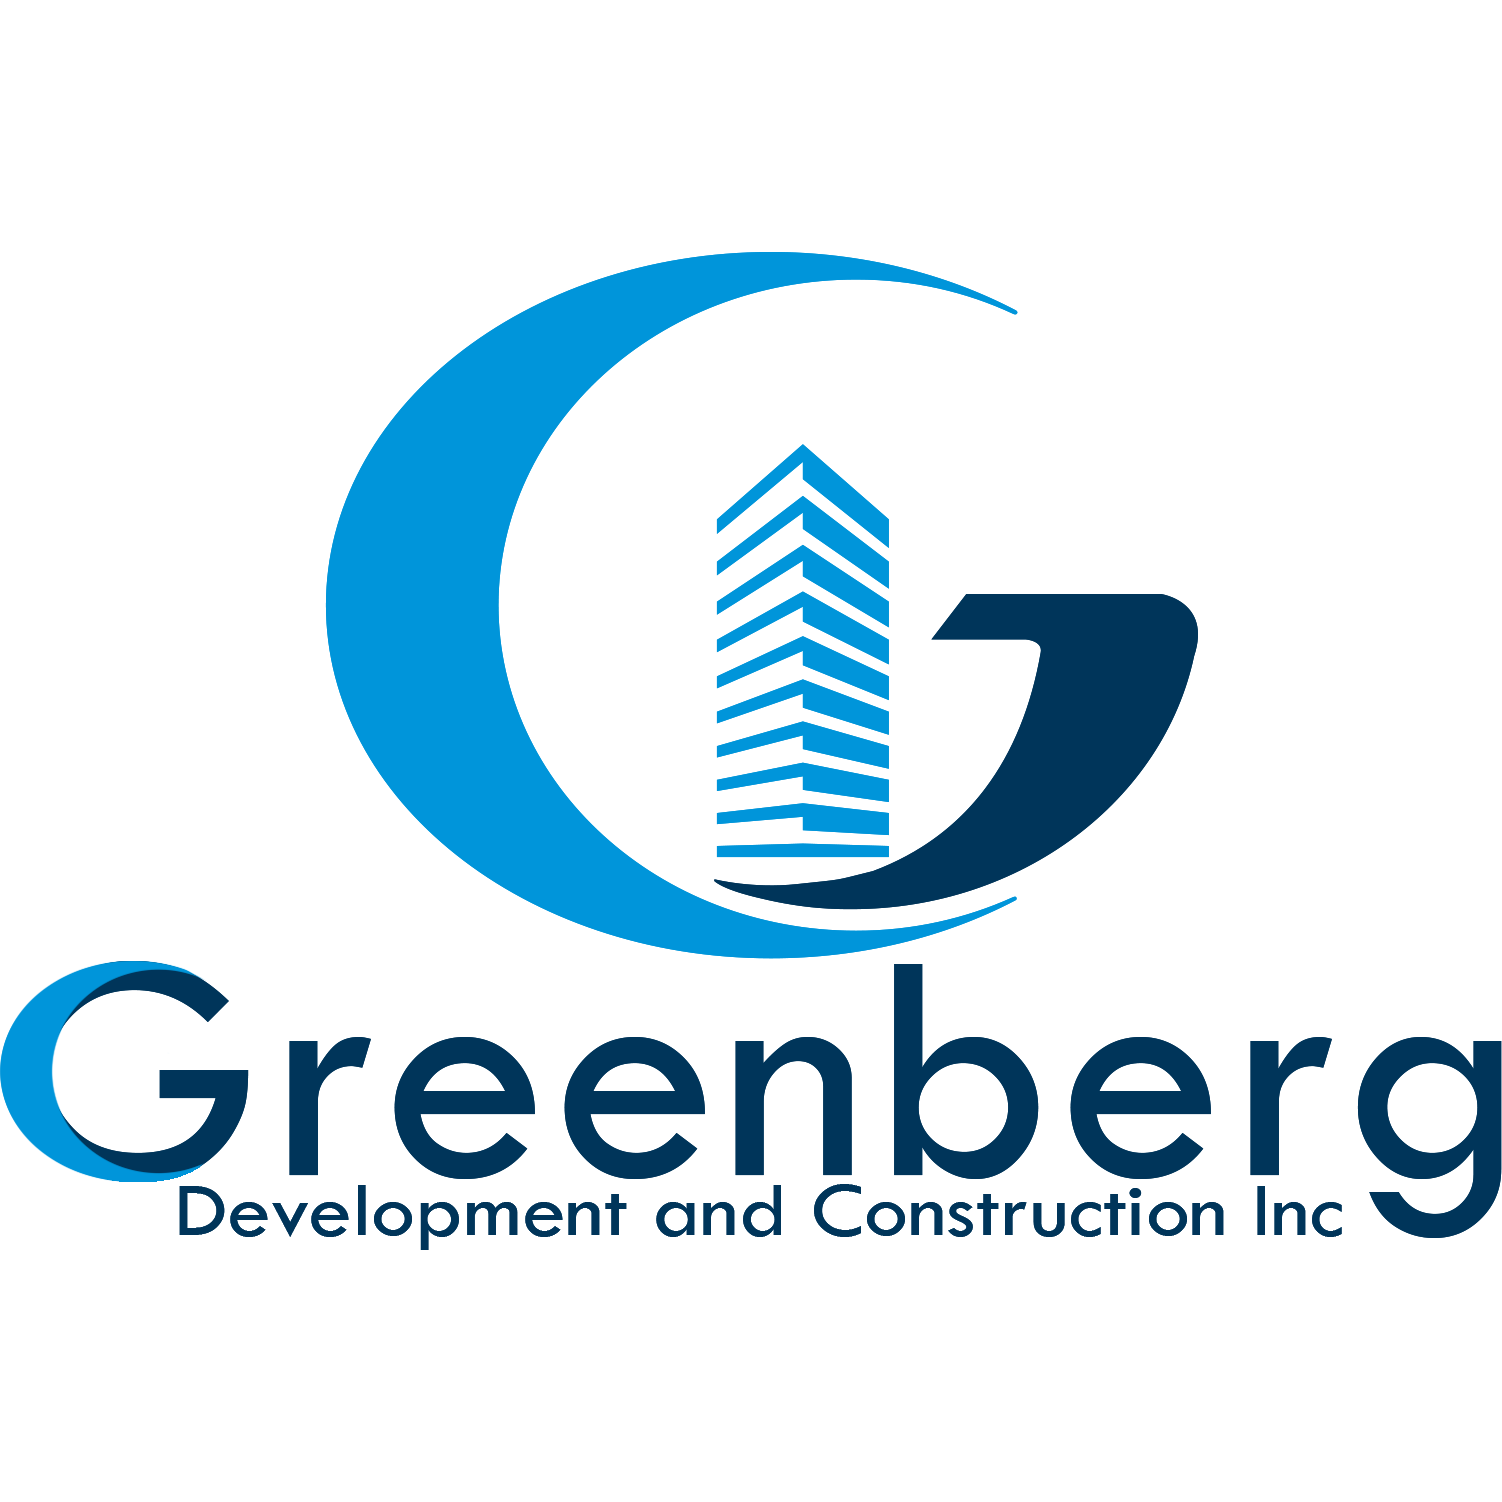 Greenberg construction coupons near me in palo alto 8coupons for Architectural services near me